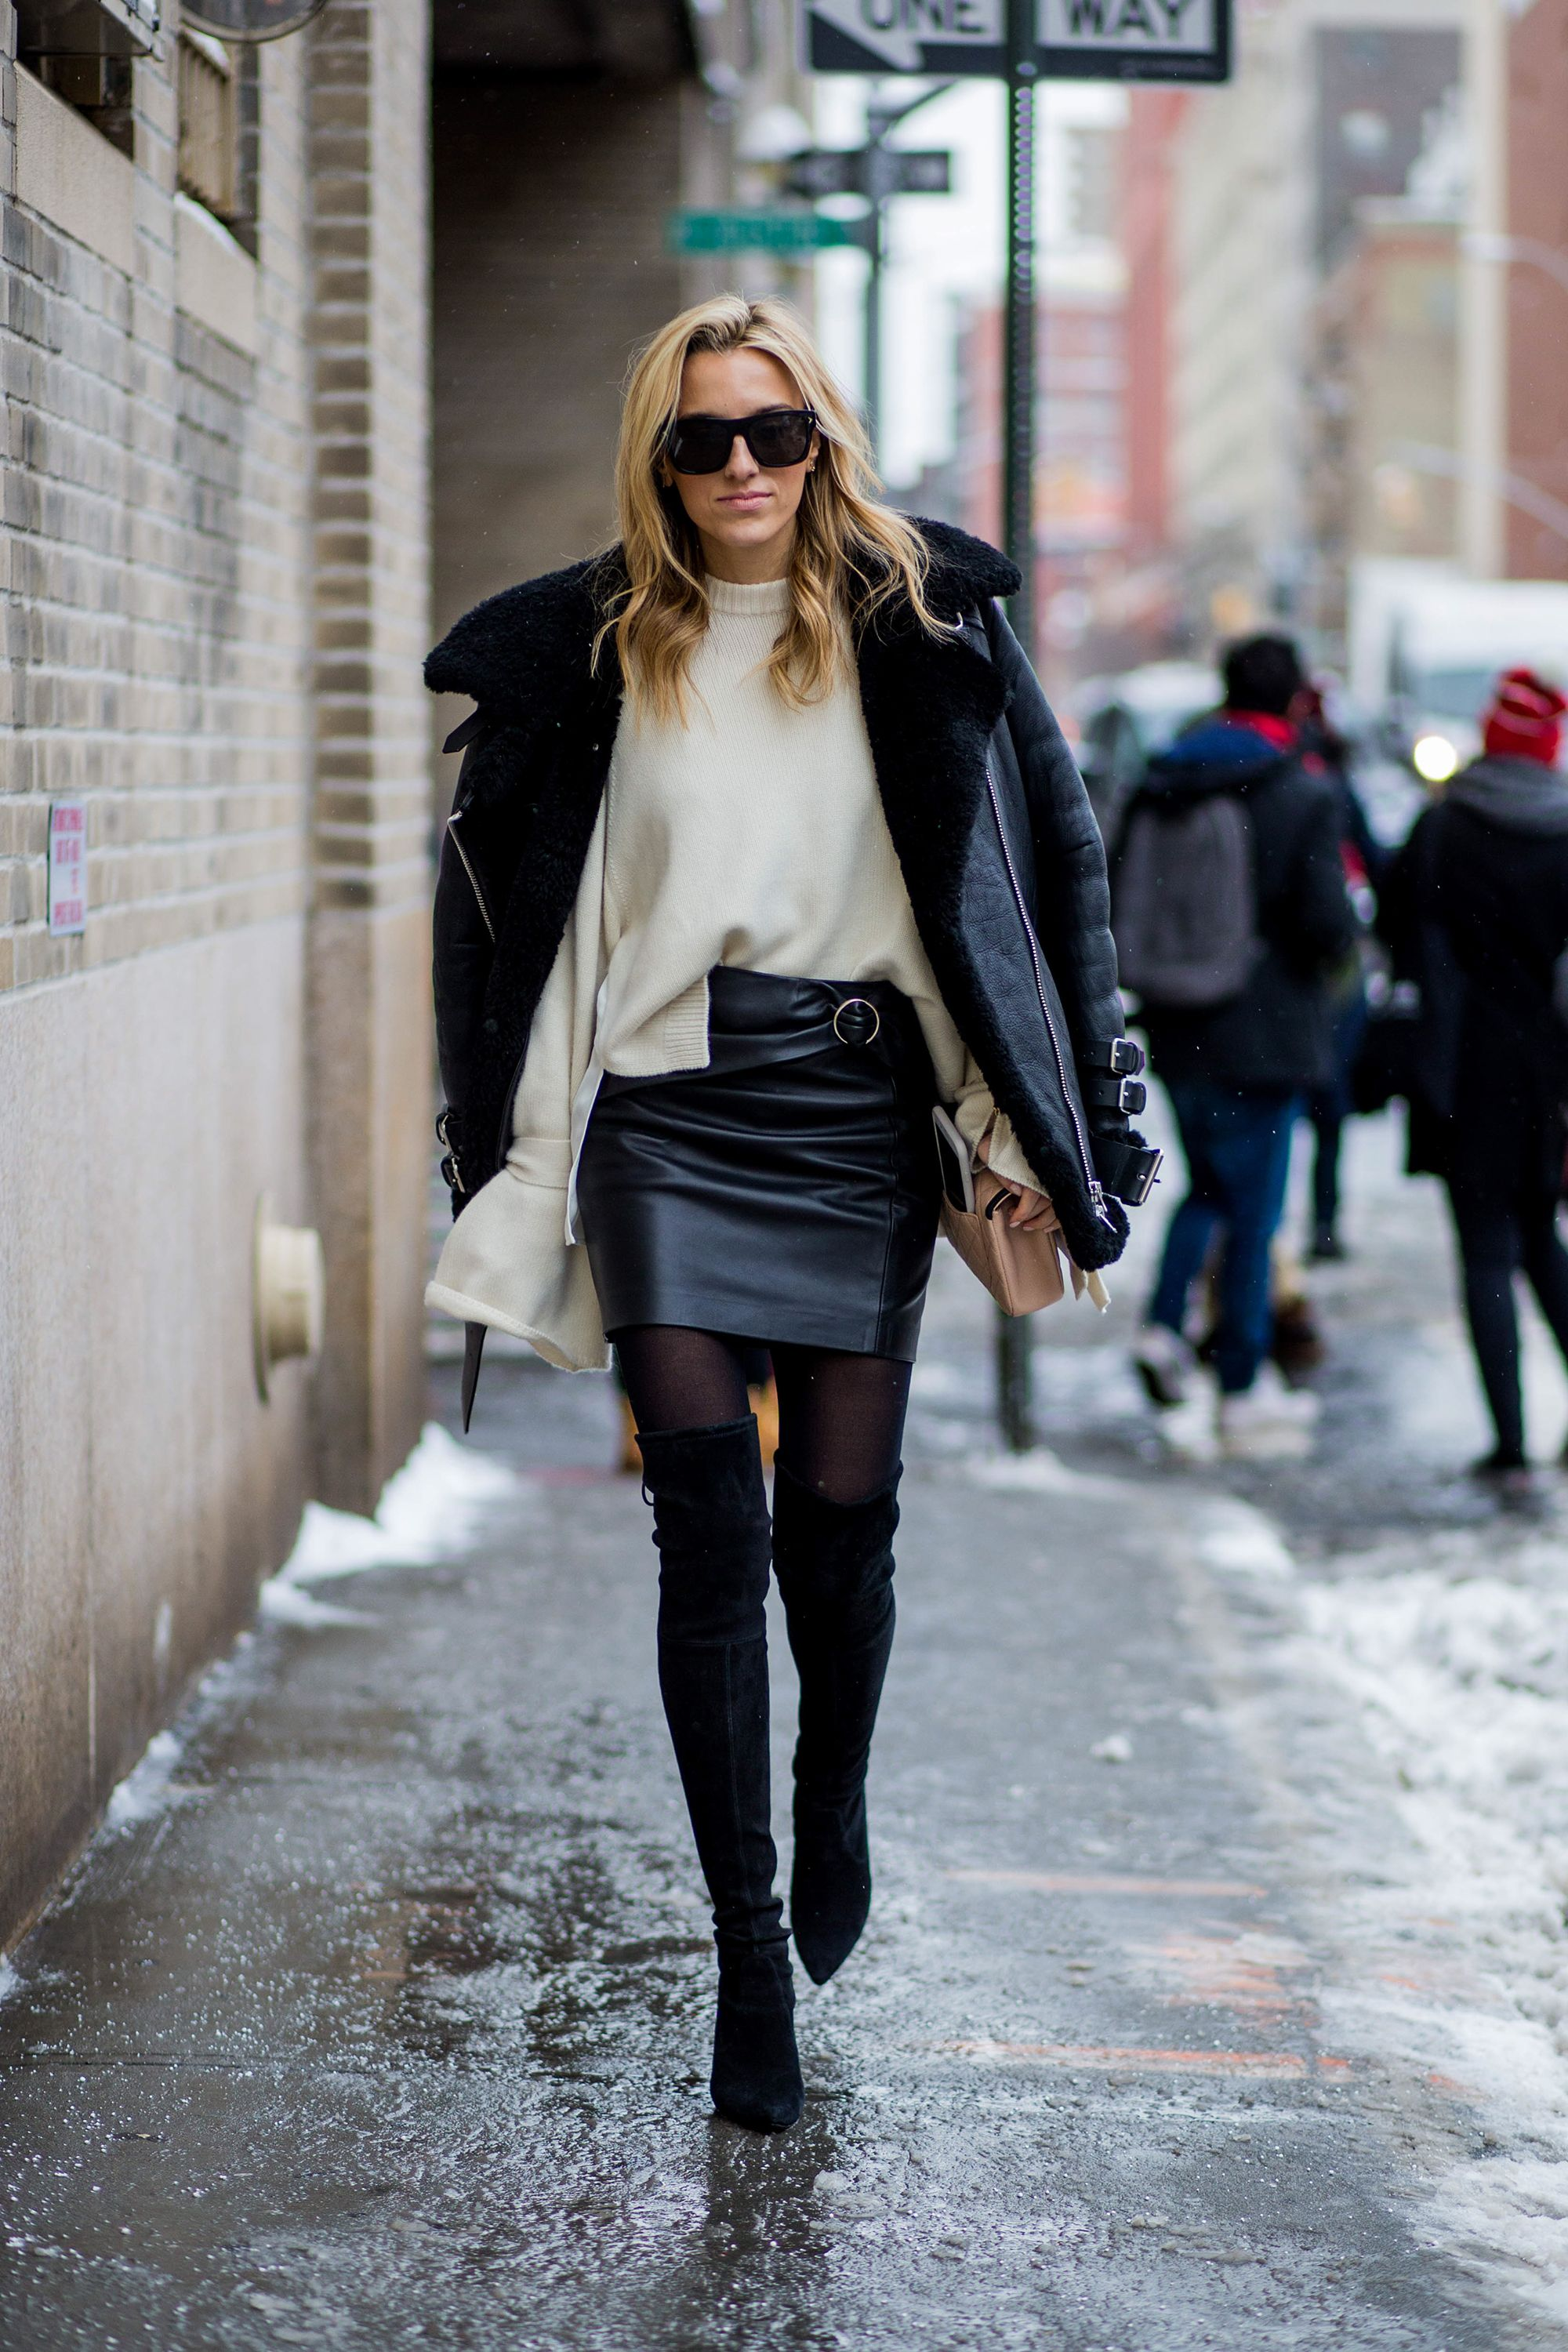 Thigh high boots - how to wear them now